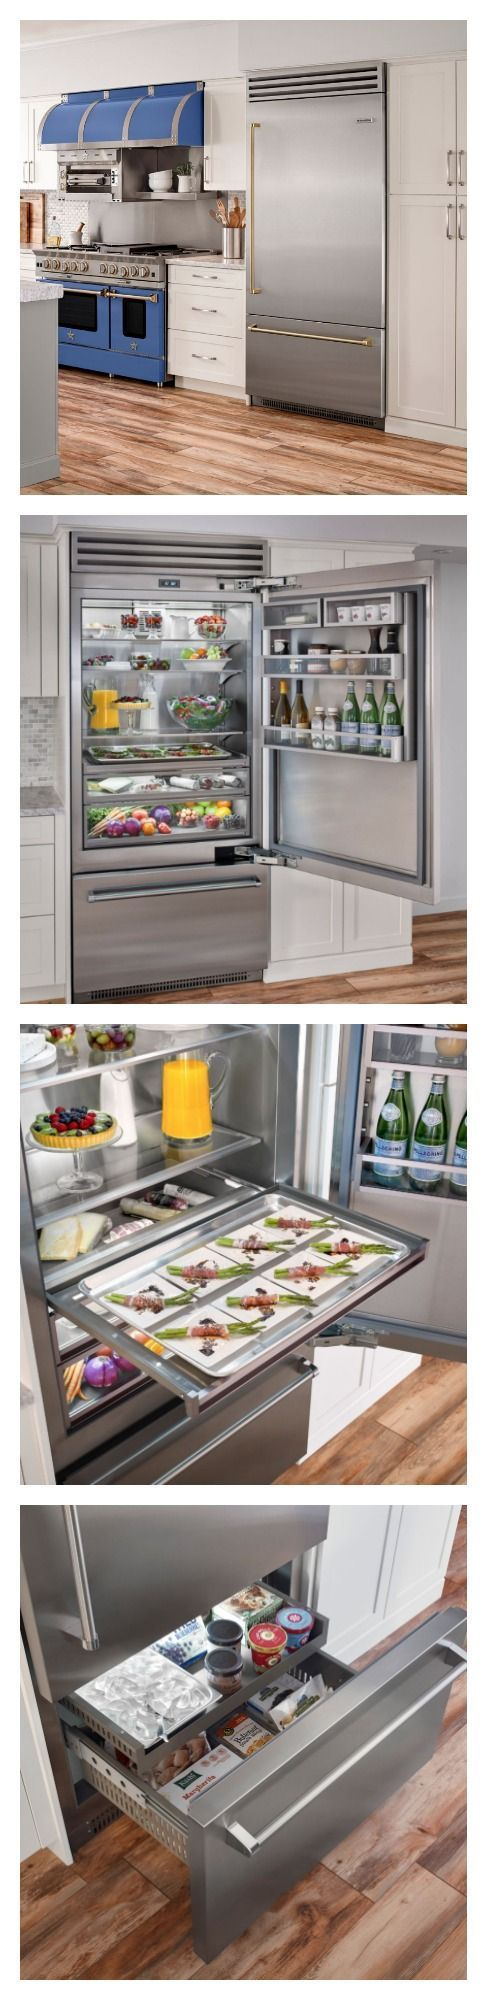 25 best ideas about kitchenaid refrigerator on pinterest stainless steel refrigerator - Home appliances that we thought ...